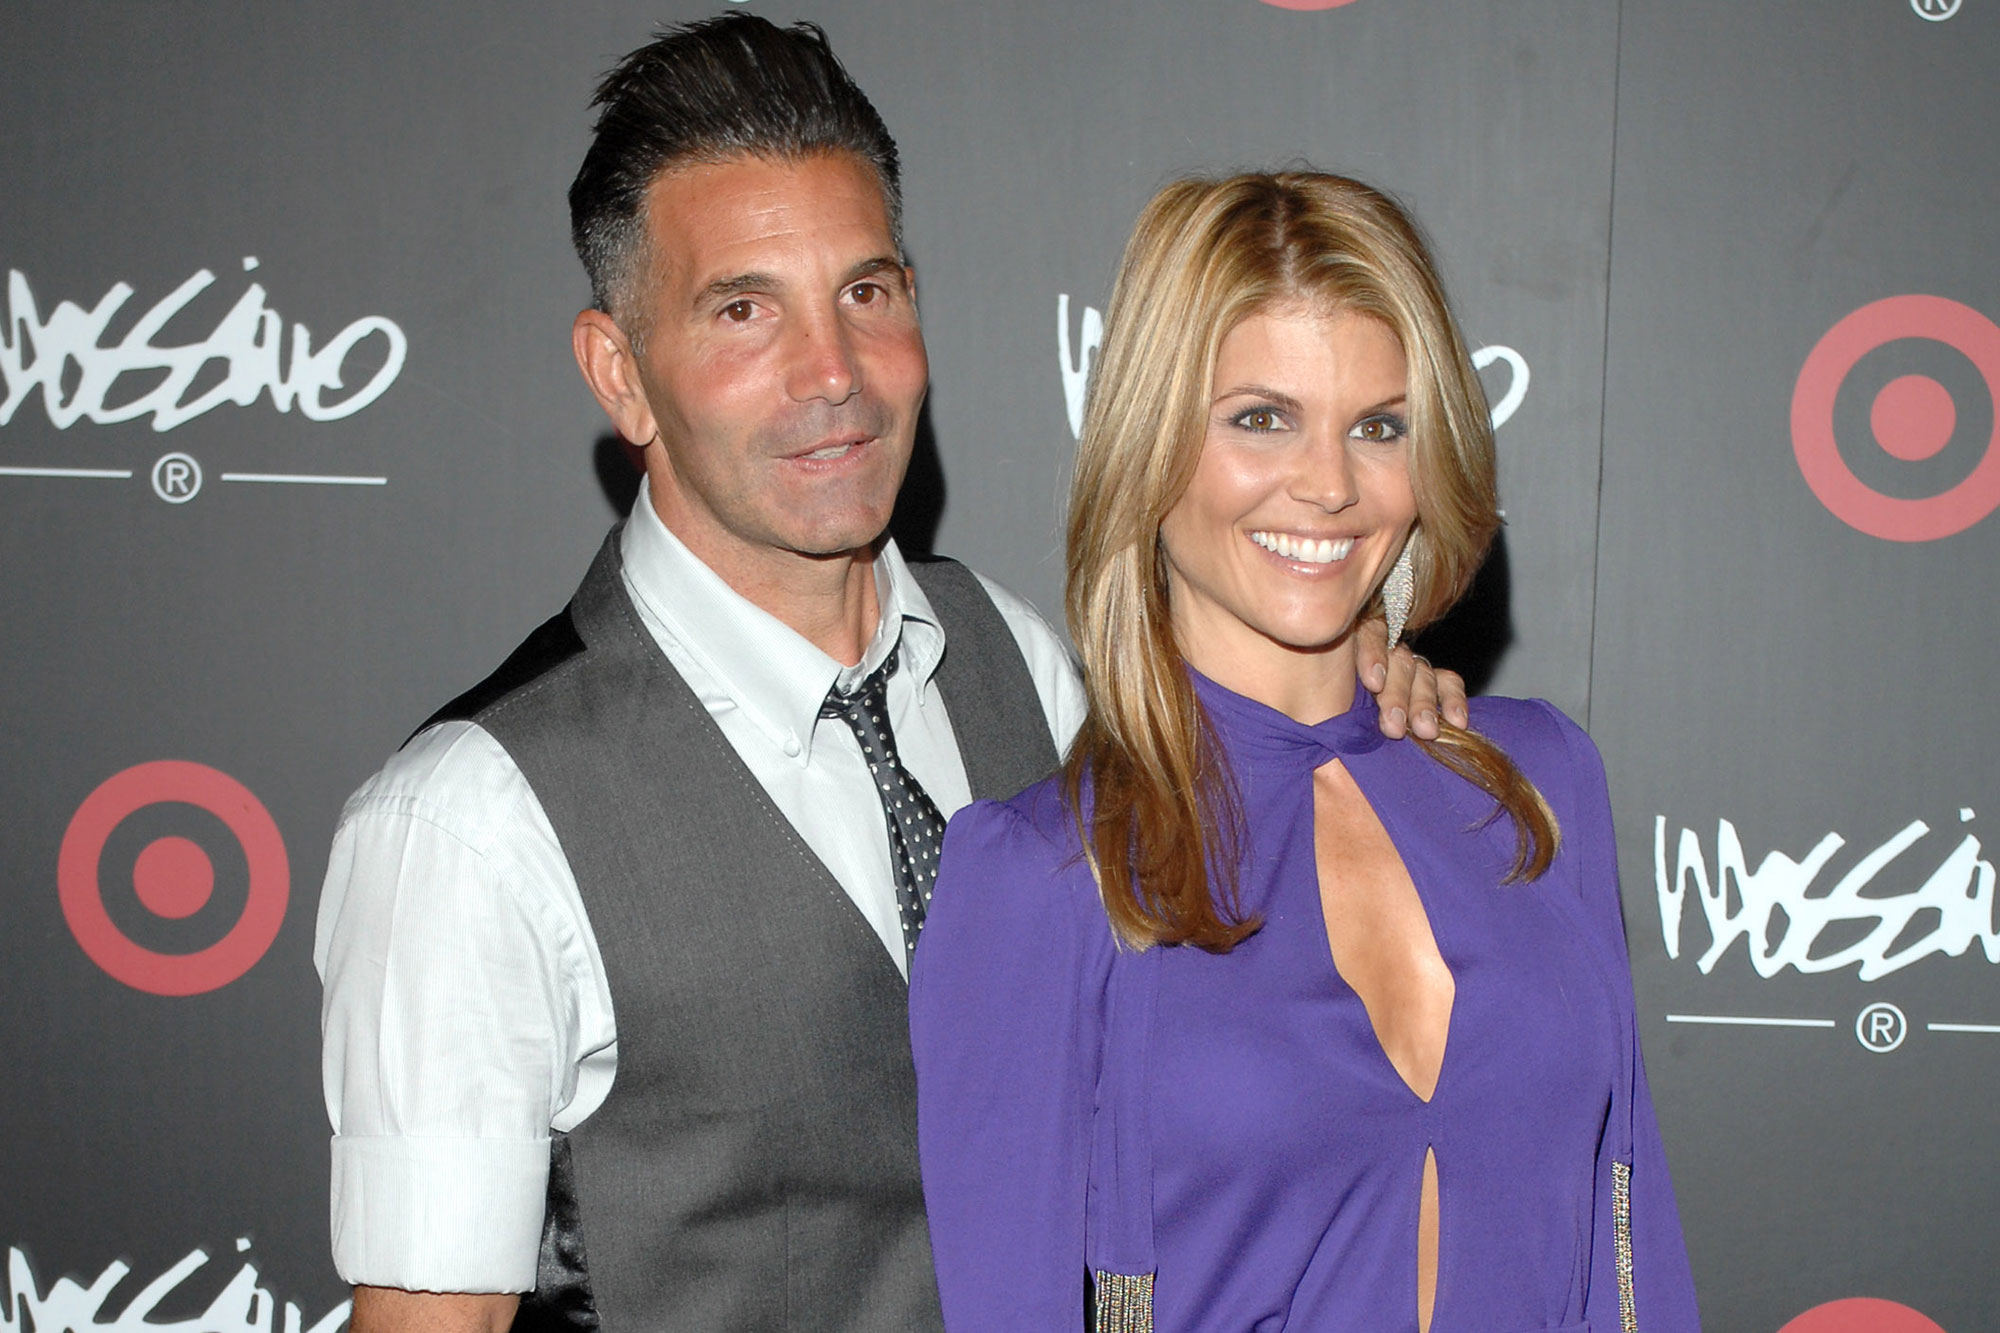 Lori Loughlin Gets 2 Months in College Admissions Scandal